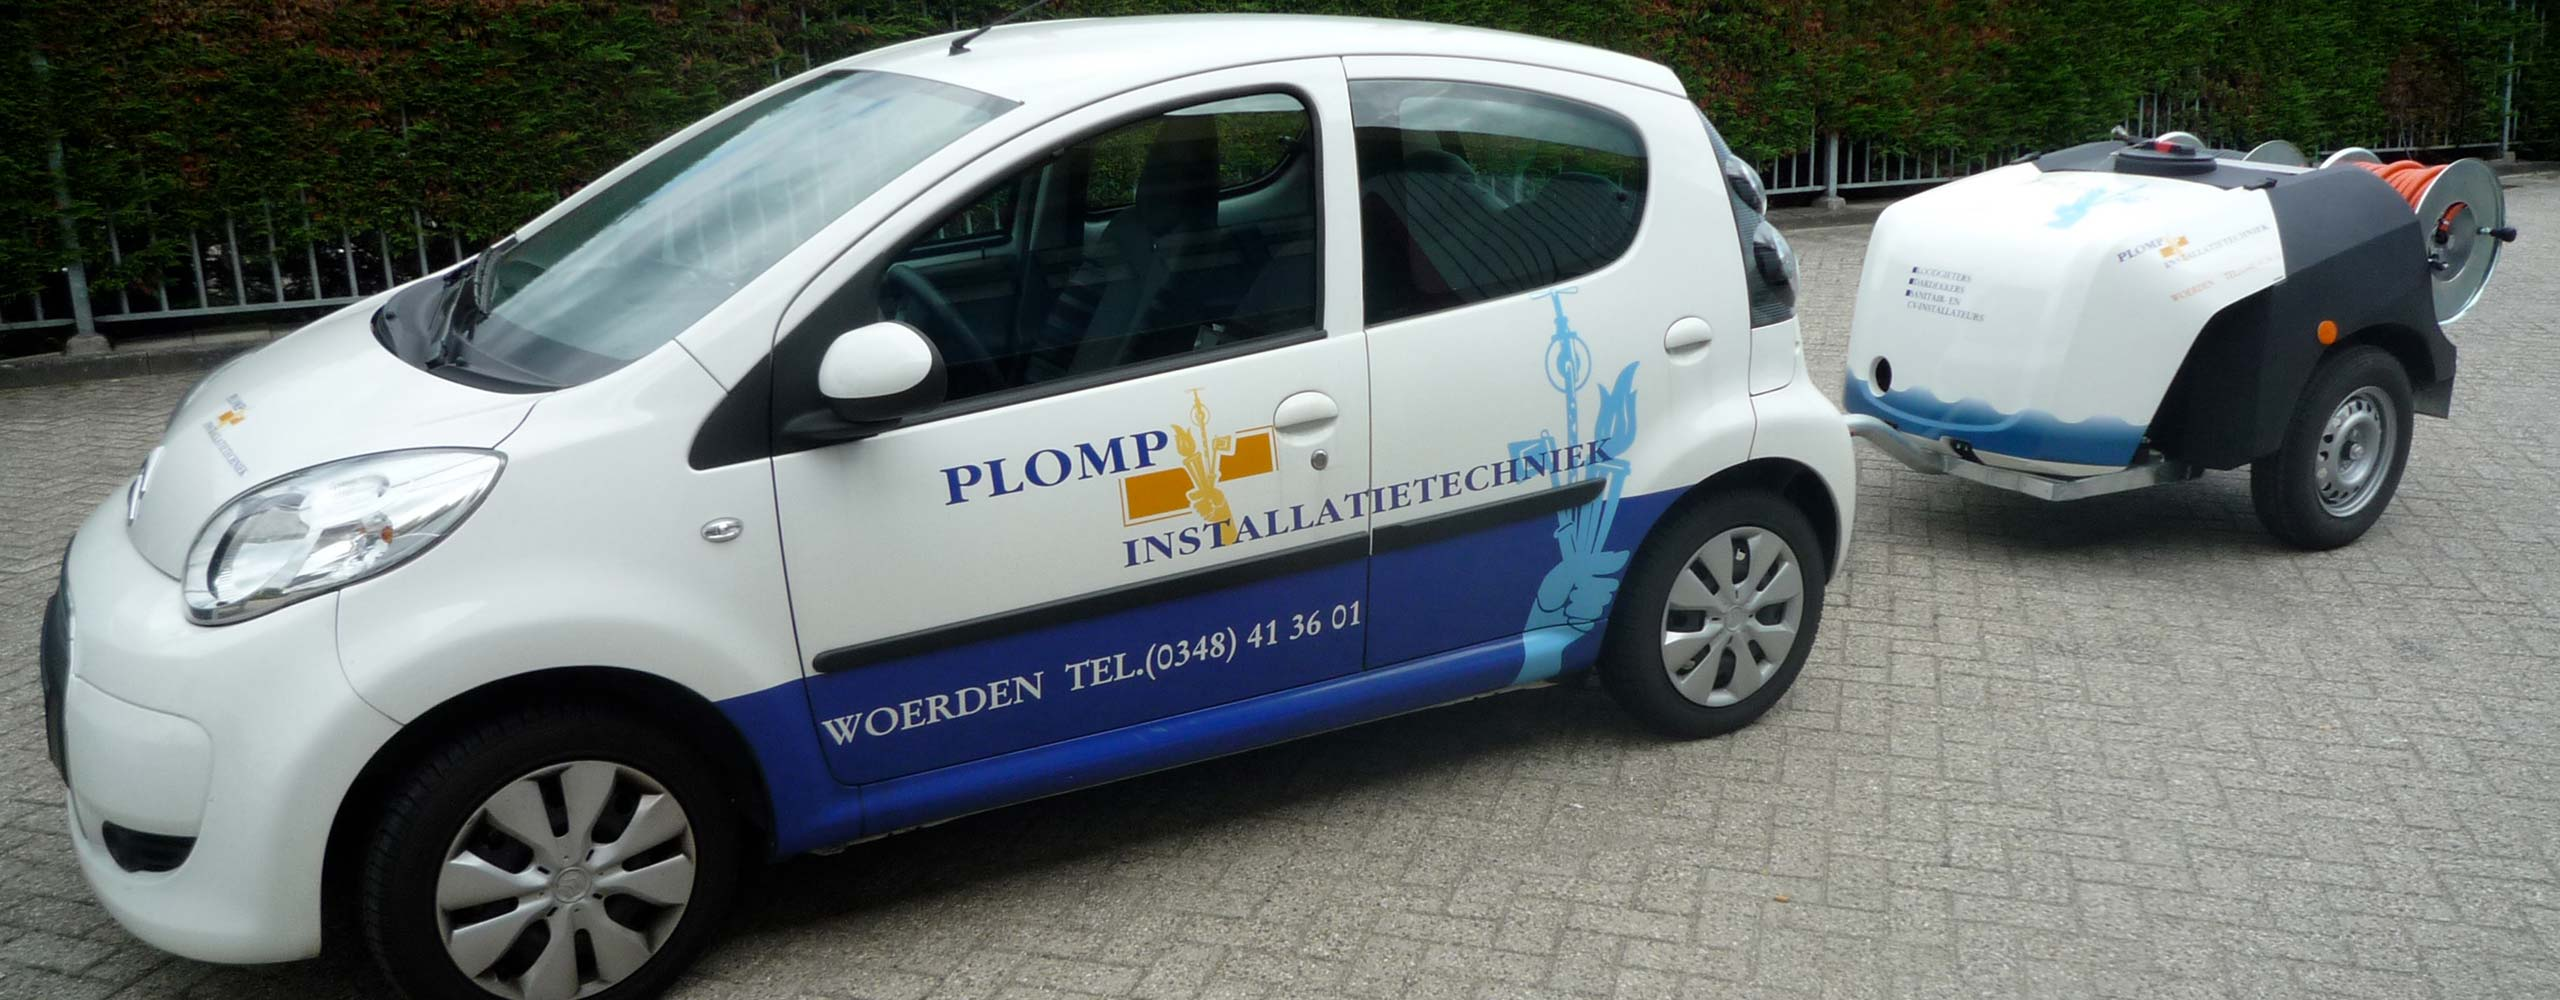 plomp-installatietechniek-slide-contact-1